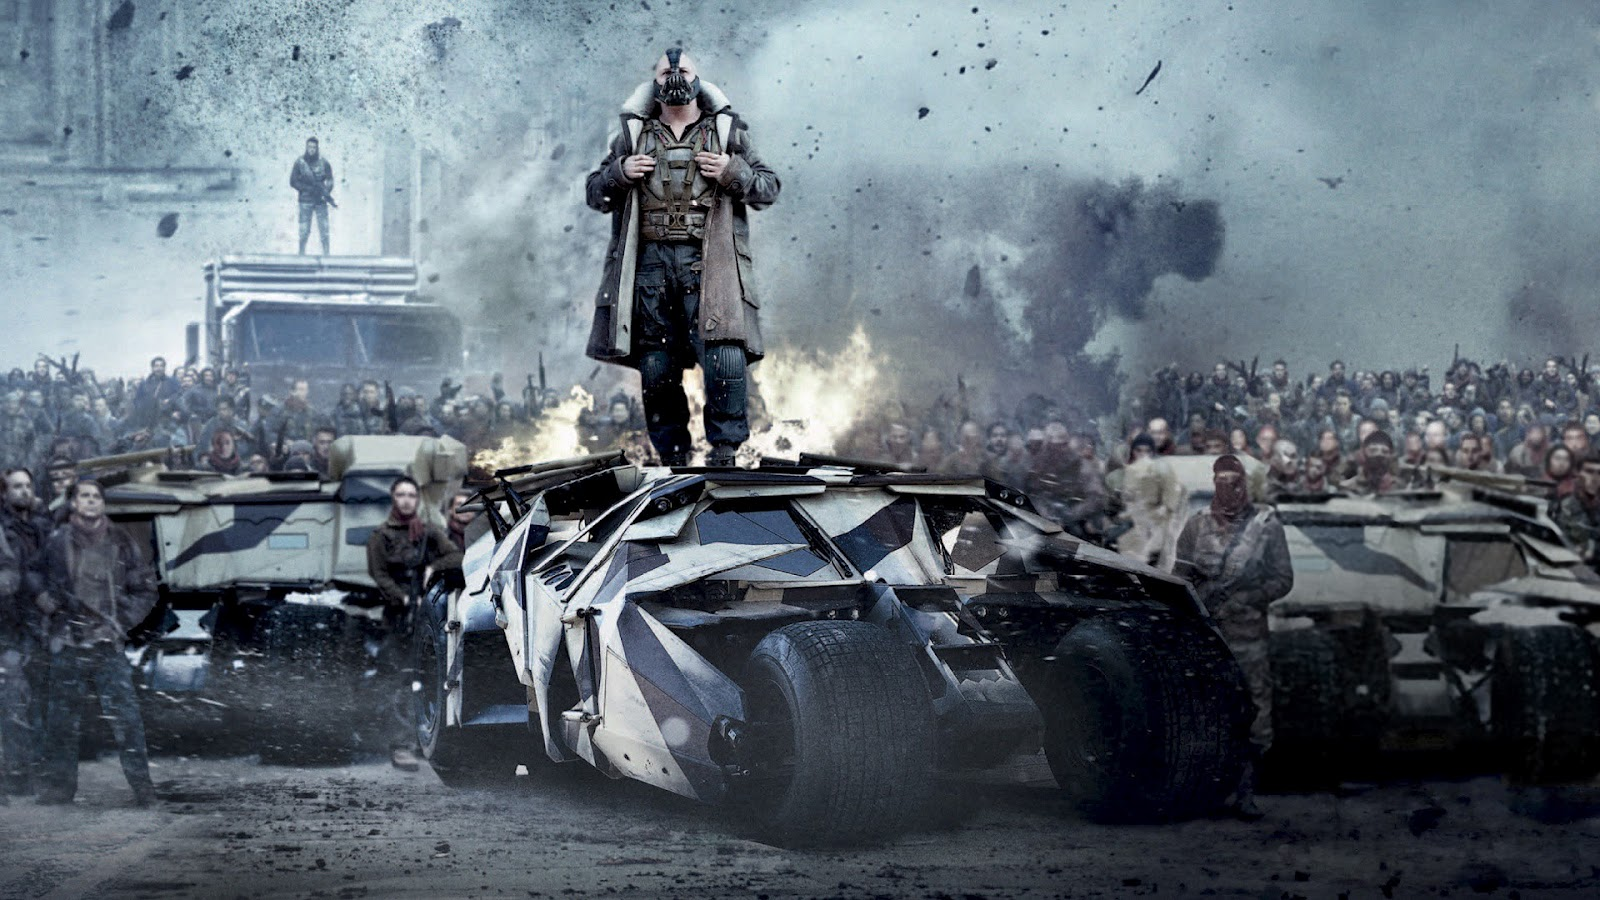 http://3.bp.blogspot.com/-kFPaoiGkaXo/T9zagmnlz1I/AAAAAAAACLs/2HKyUTpG7nE/s1600/Bane_on_Batmobile_The_Dark_Knight_Rises_HD_Wallpaper-Vvallpaper.Net.Jpg